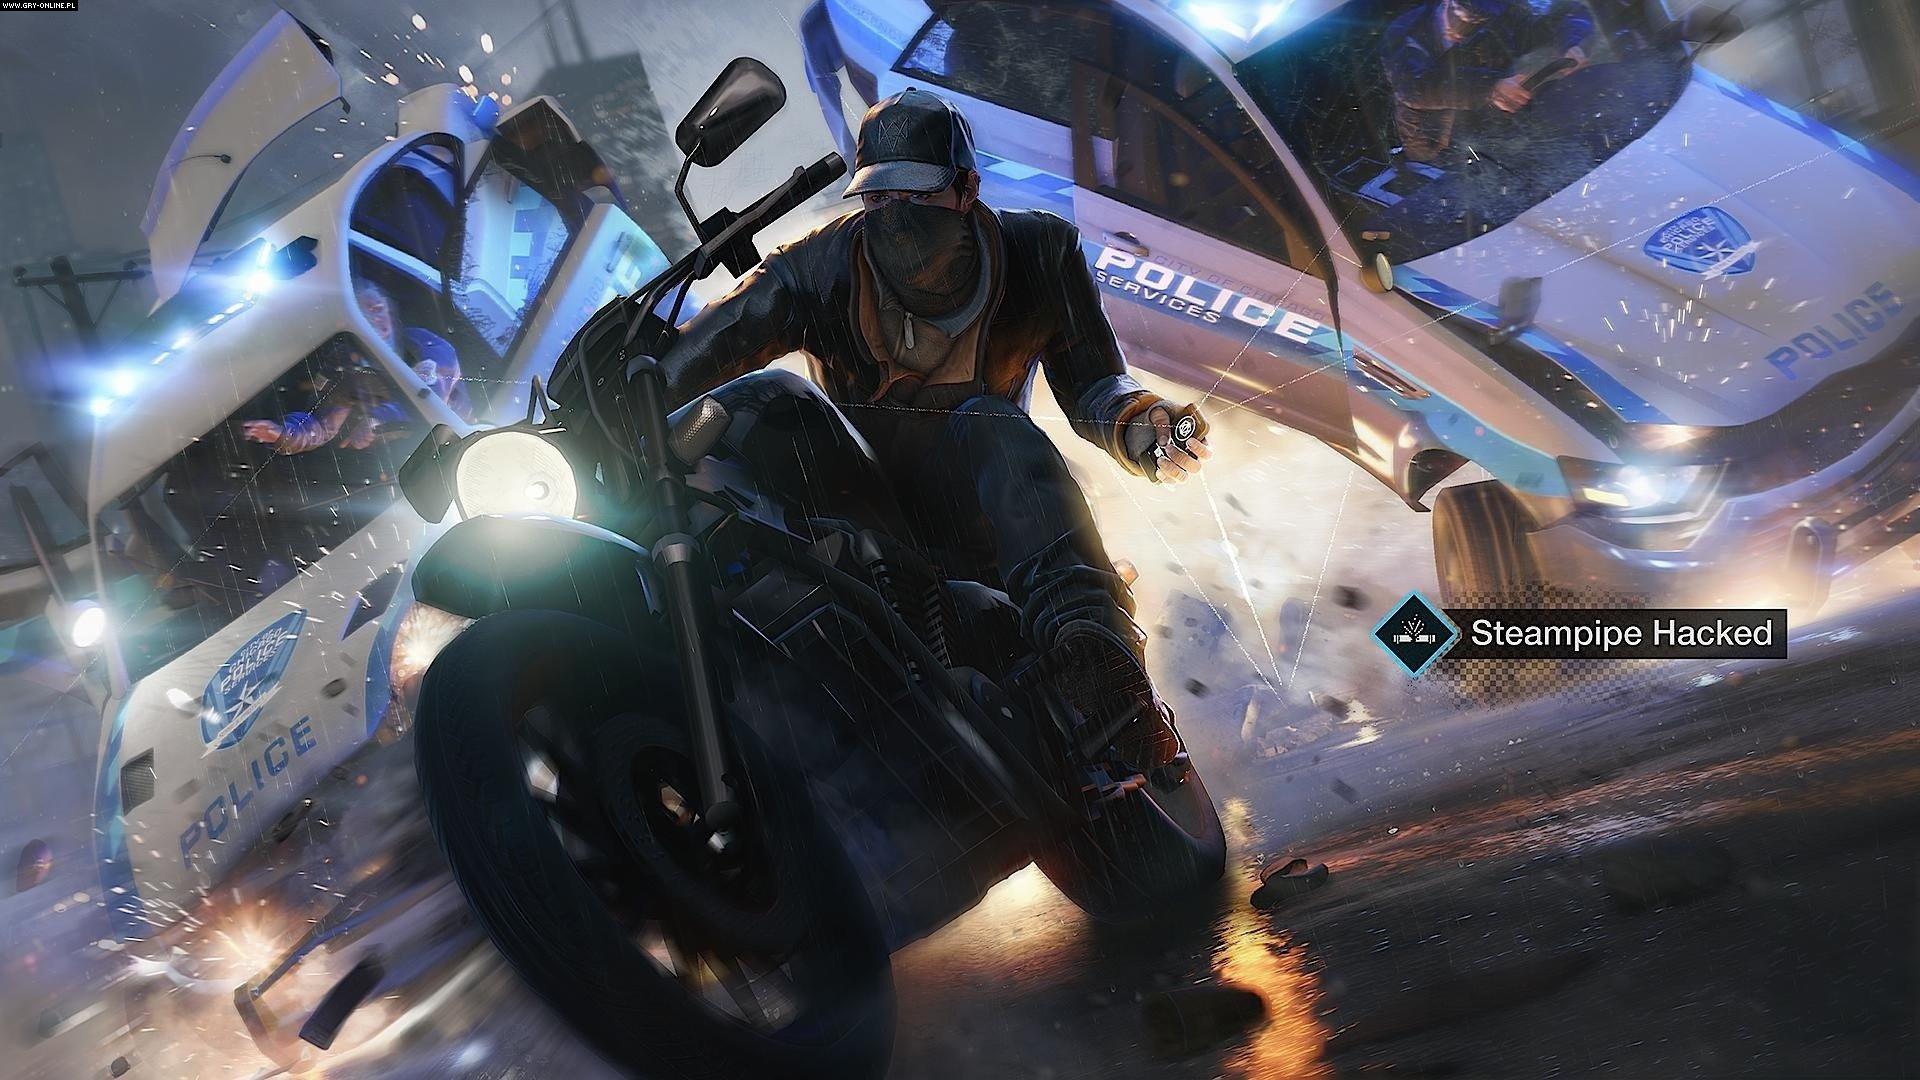 92 Watch Dogs Wallpapers | HD Backgrounds - Wallpaper Abyss